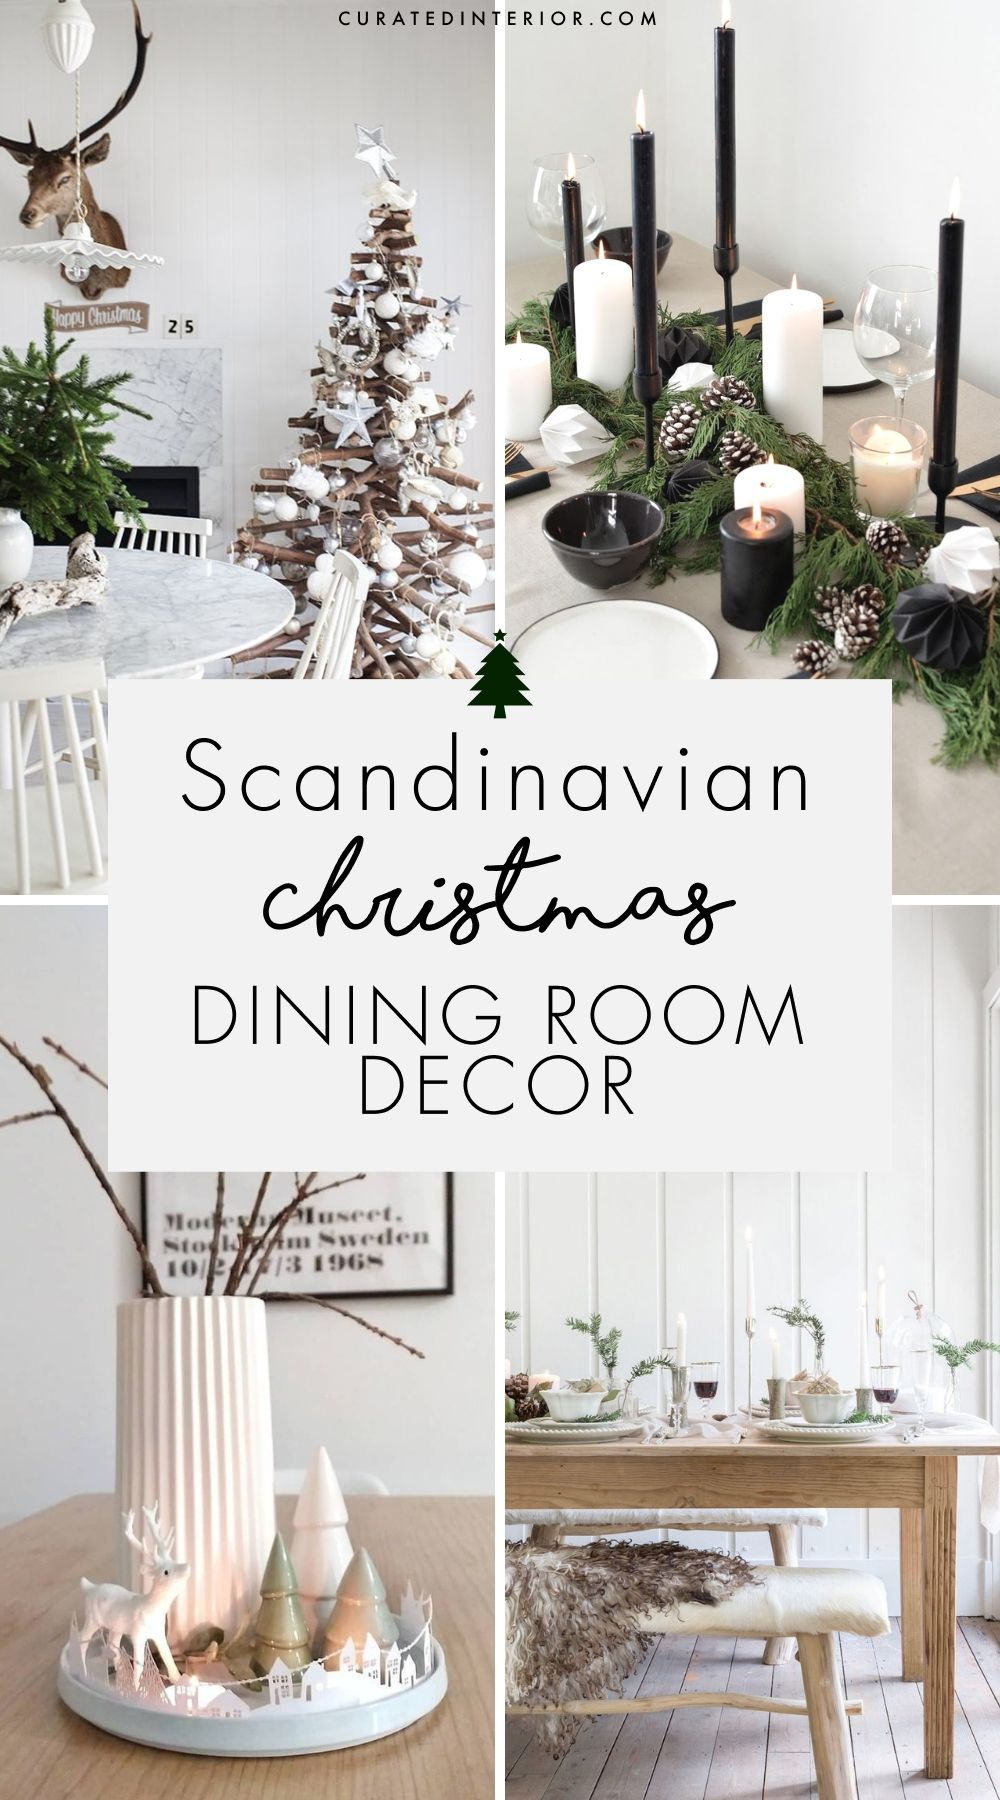 25 Scandinavian Christmas Dining Room Decor Ideas